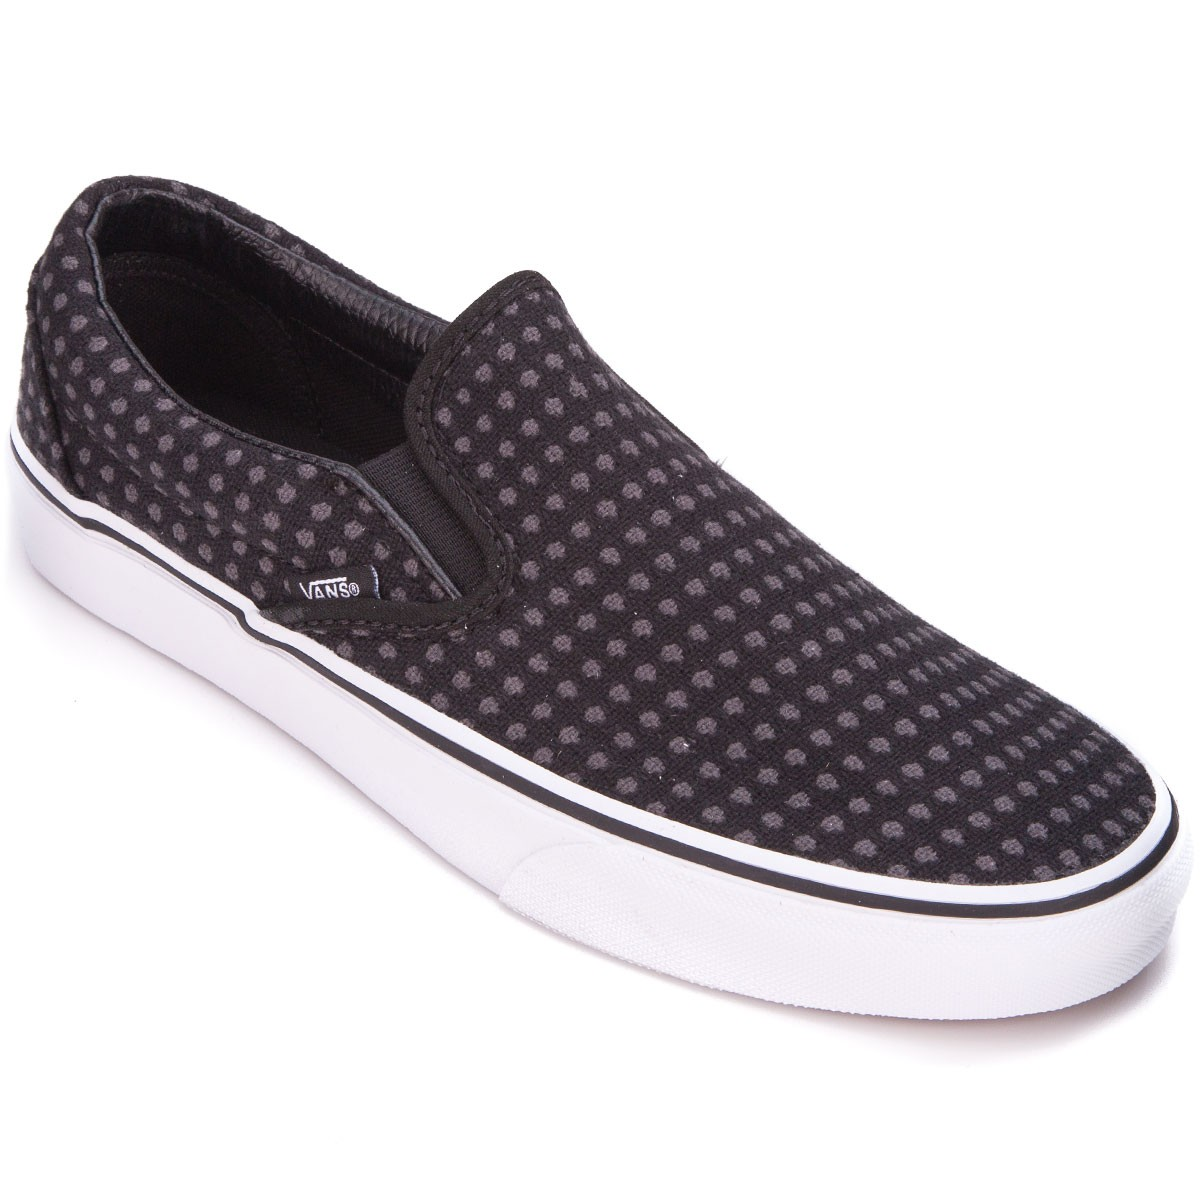 ed594e09f0ec Vans Classic Slip-On Womens Shoes - Wool Dots Black White - 3.5